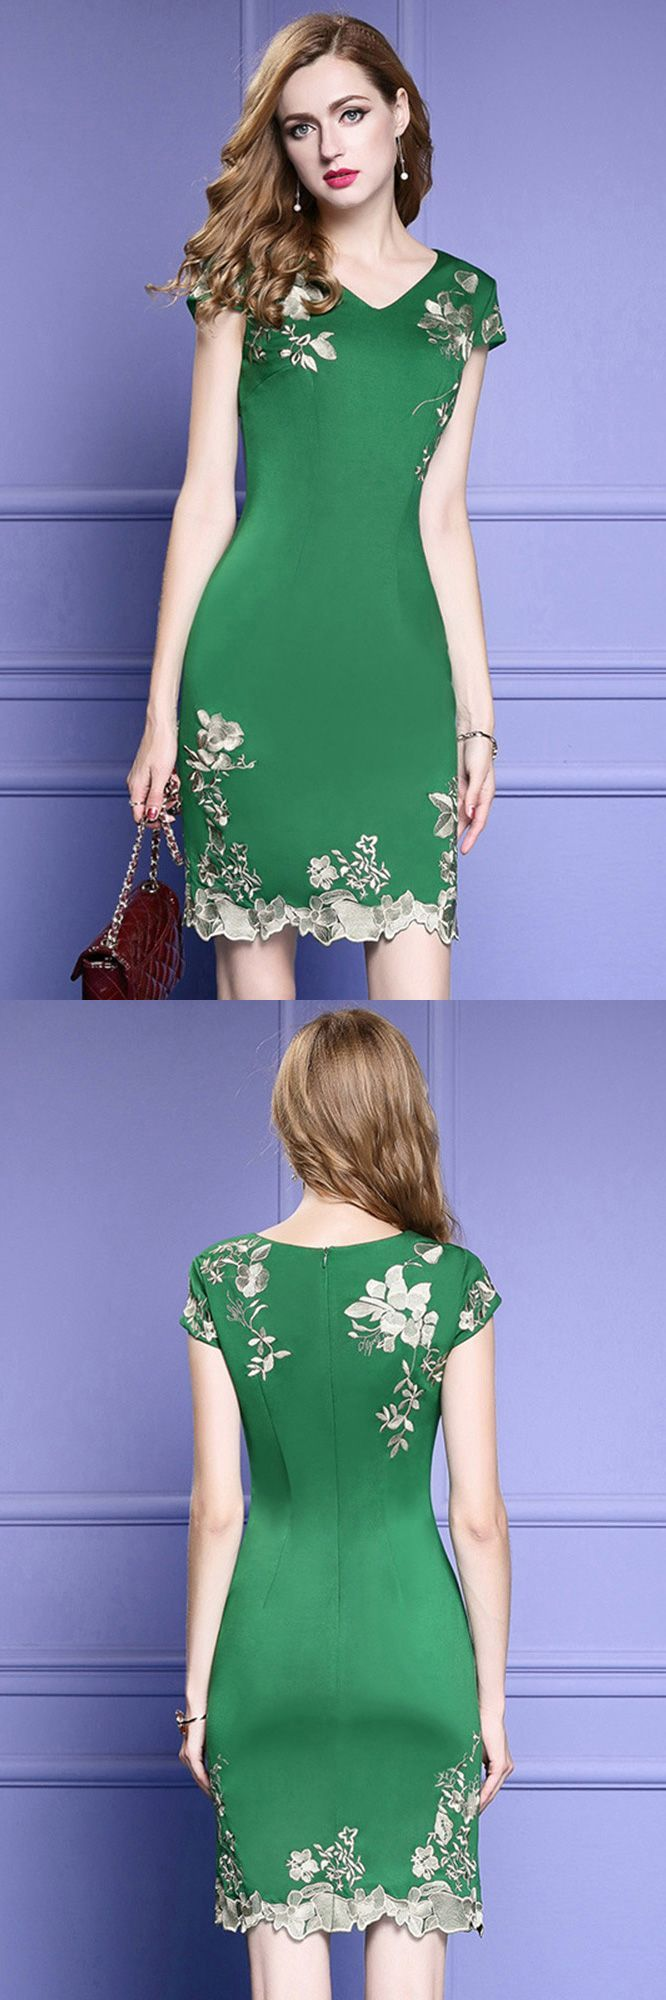 Cocktail dresses wedding  Green Bodycon Cocktail Dress For Wedding Guest With Cap Sleeves